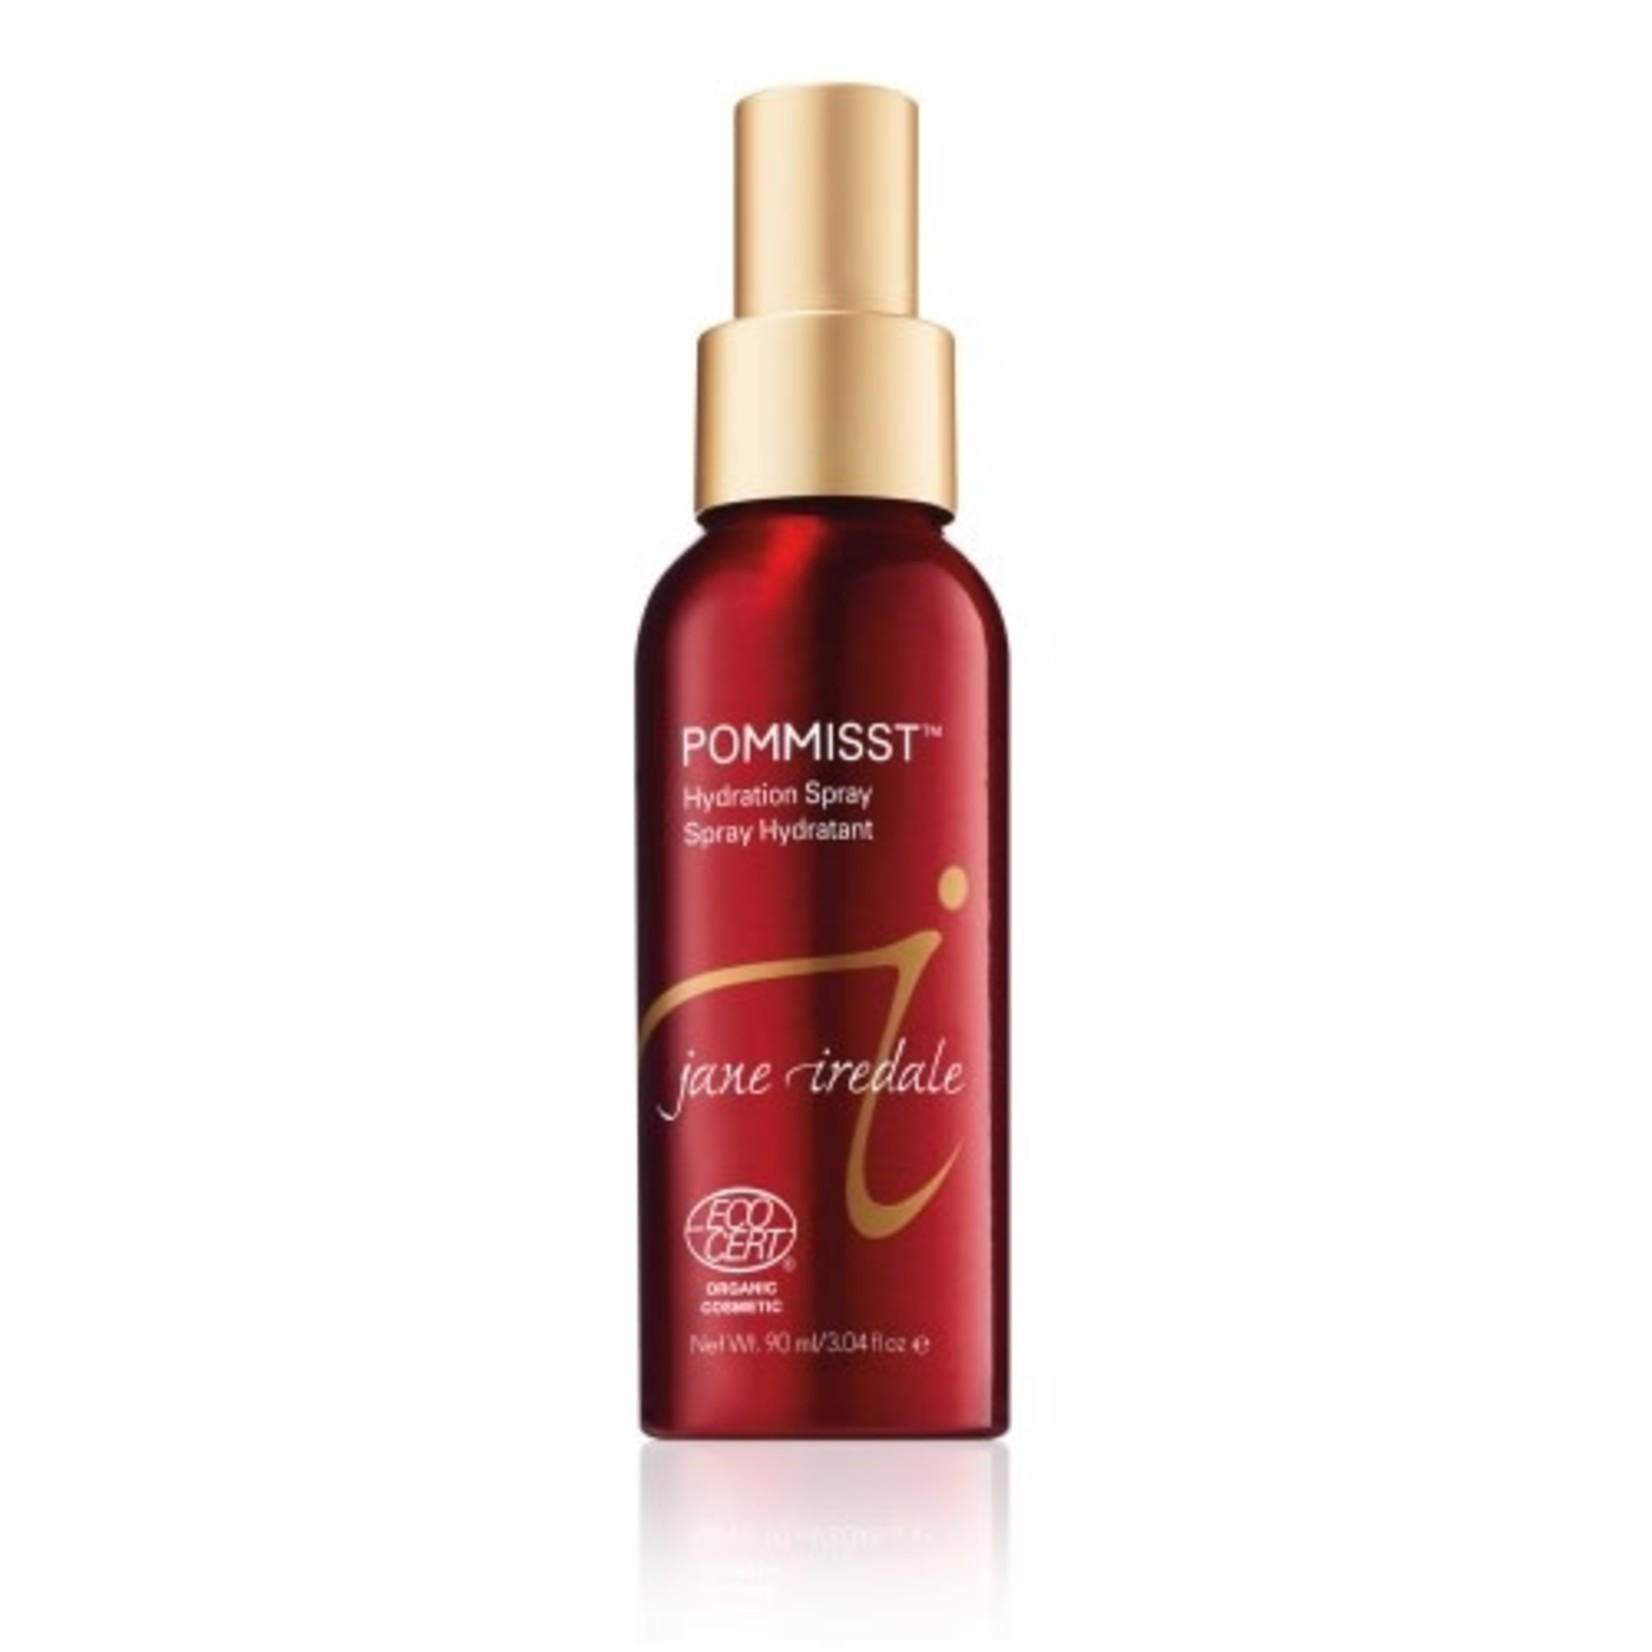 jane iredale Hydration spray pommist